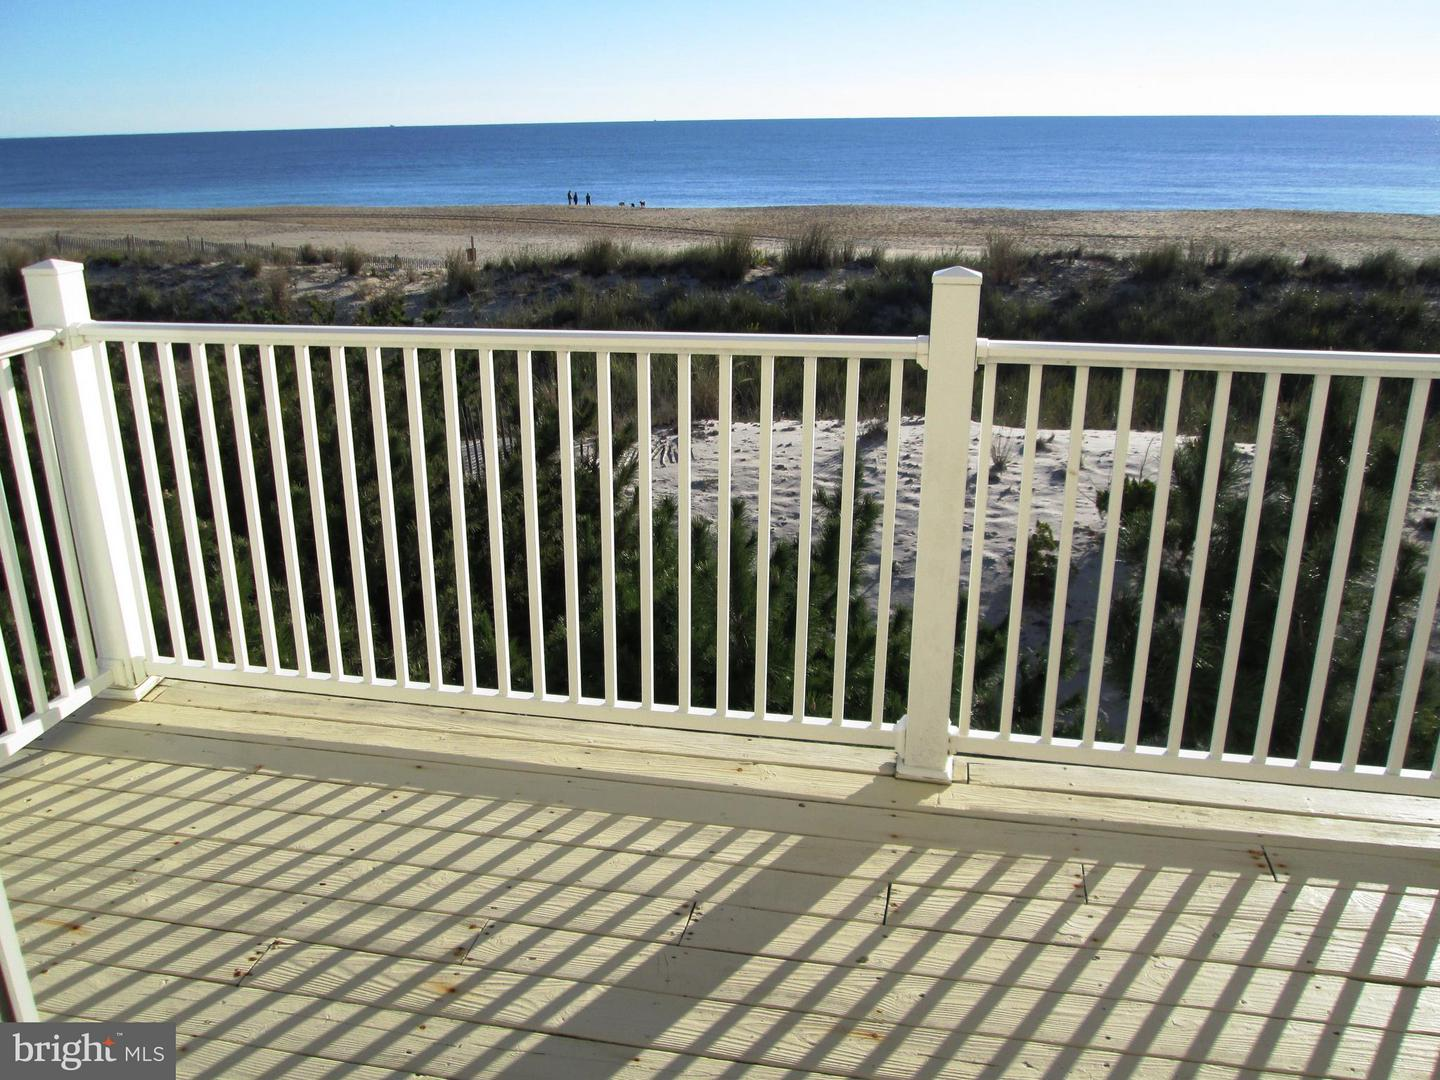 1009972274-300920562421-2018-10-22-09-17-09 38955 Bunting Ave #north Unit | Fenwick Island, DE Real Estate For Sale | MLS# 1009972274  - 1st Choice Properties